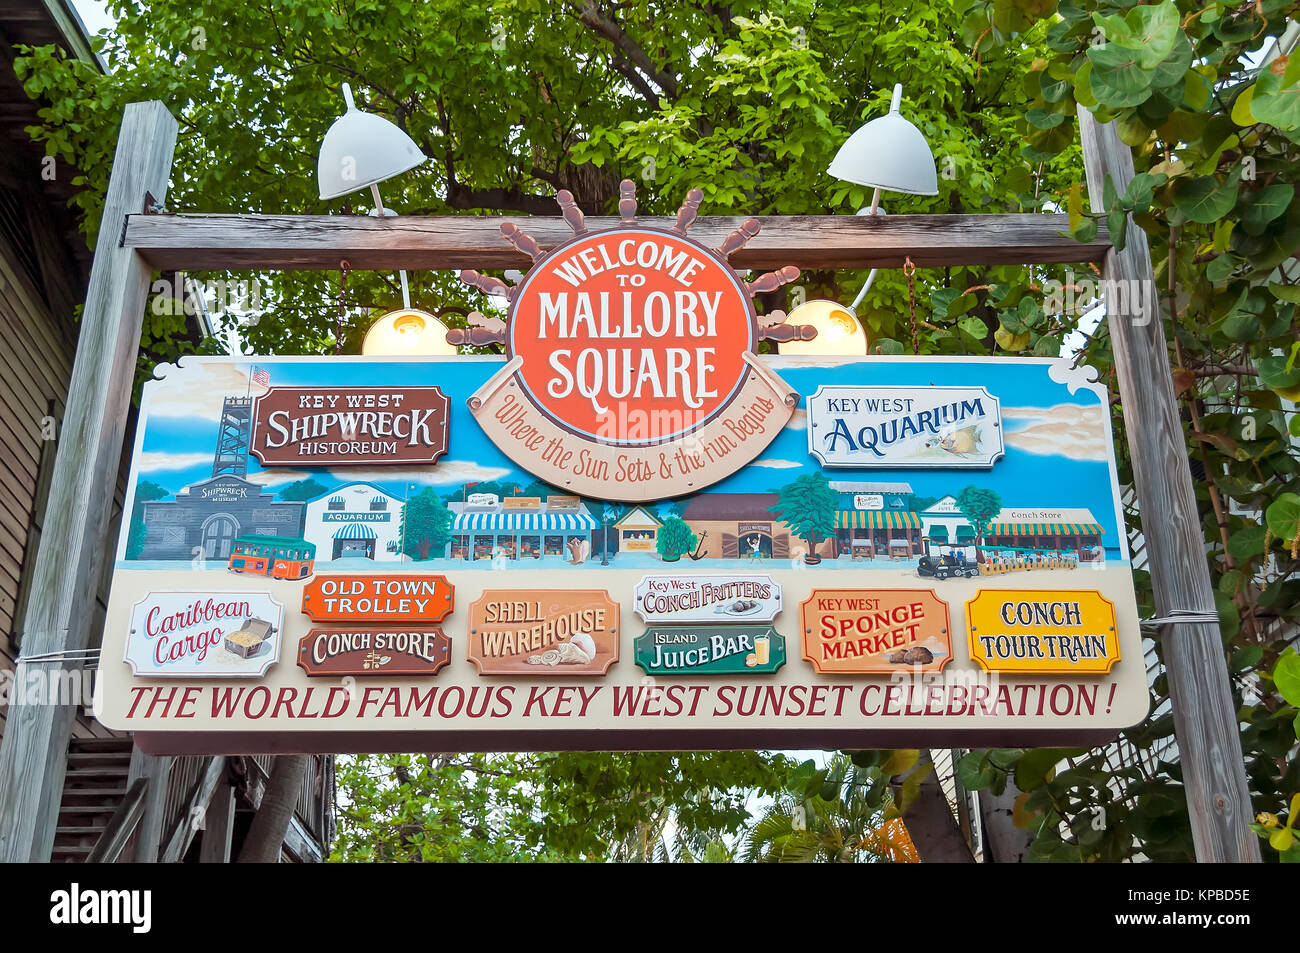 Welcome to Mallory Square  Where the Sun Sets & the Fun Begins outdoor sign, Key West, Florida - Stock Image